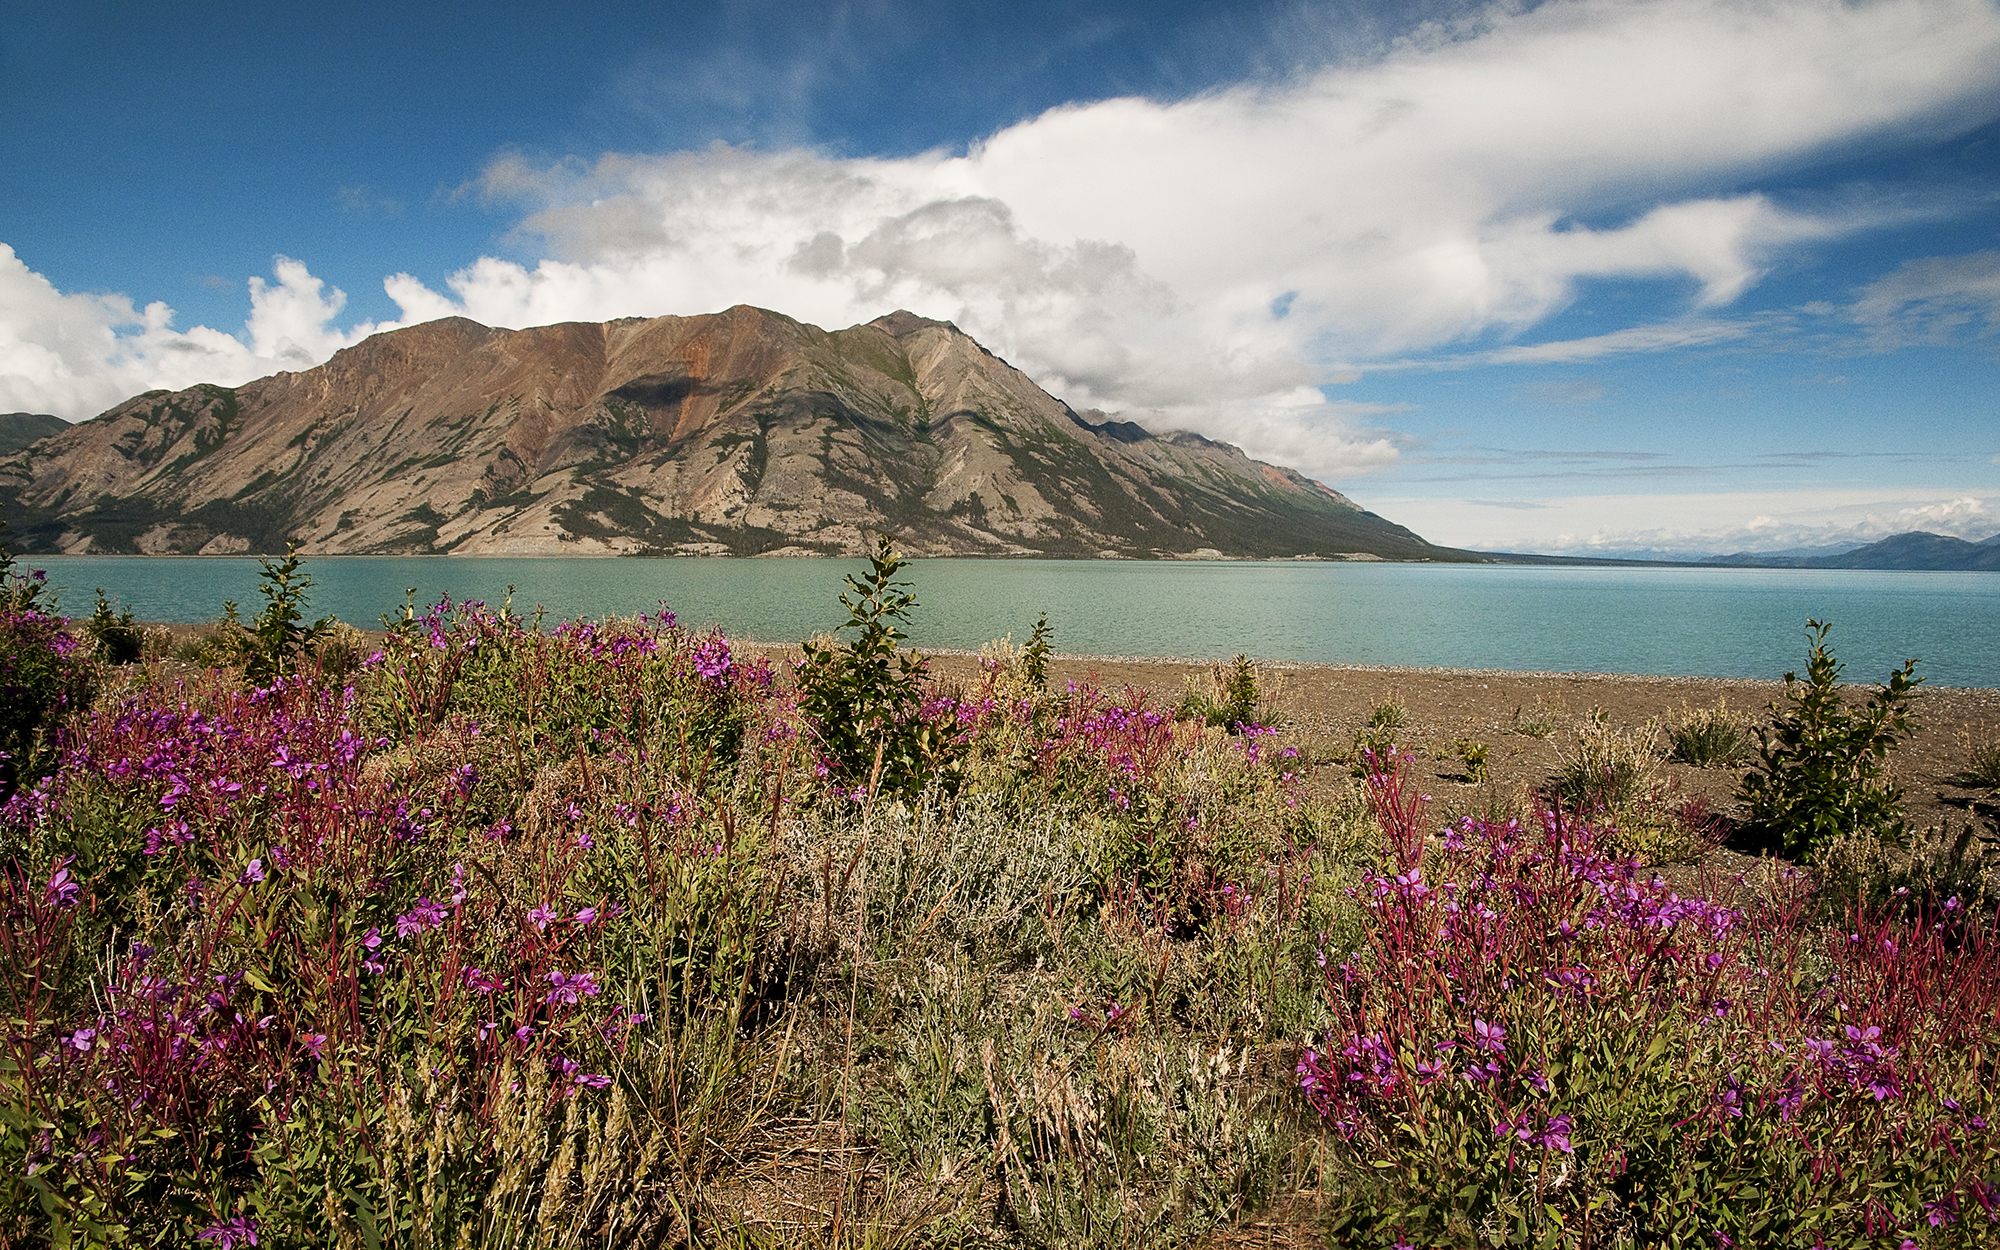 Kluane National Park in Yukon Territory